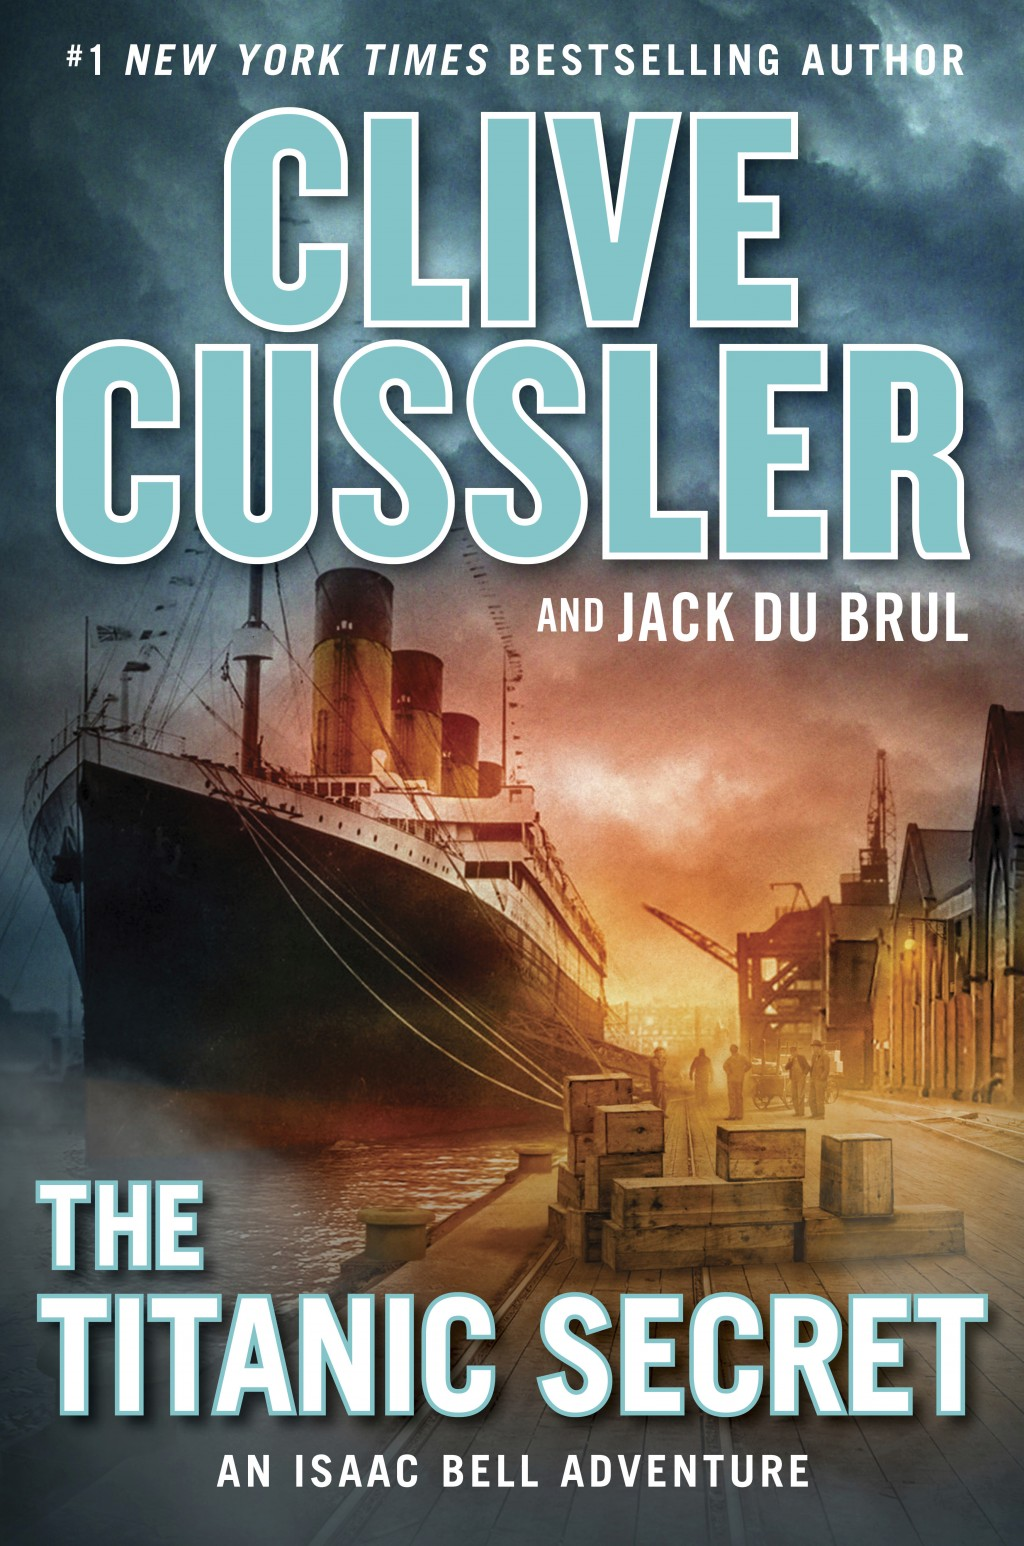 """This cover image released by G. P. Putnam's Sons shows """"The Titanic Secret,"""" by Clive Cussler and Jack Du Brul. (G. P. Putnam's Sons via AP)"""